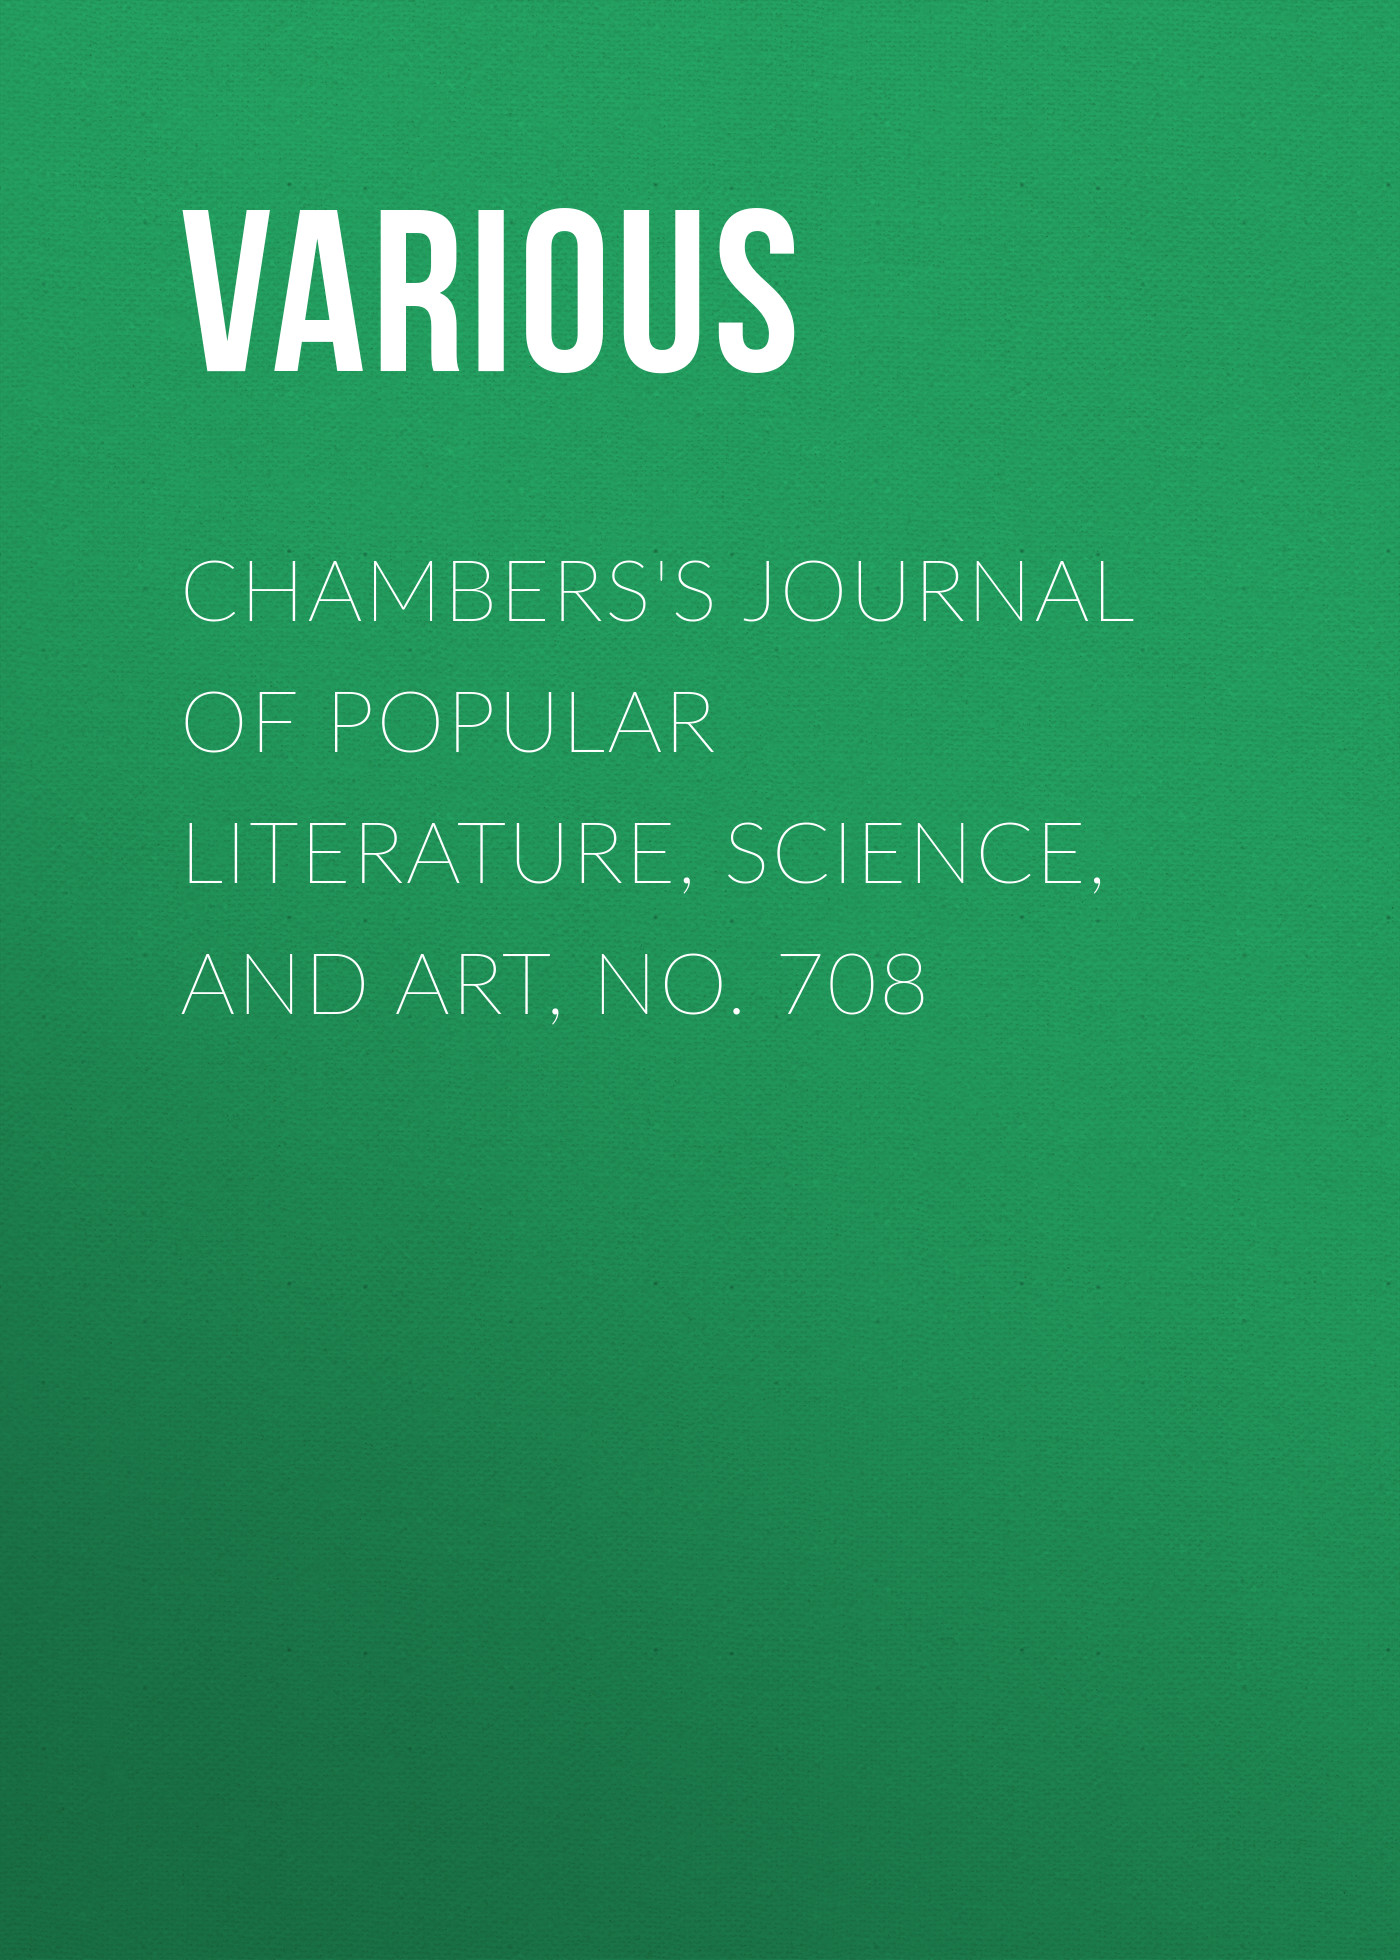 Various Chambers's Journal of Popular Literature, Science, and Art, No. 708 various chambers s journal of popular literature science and art no 732